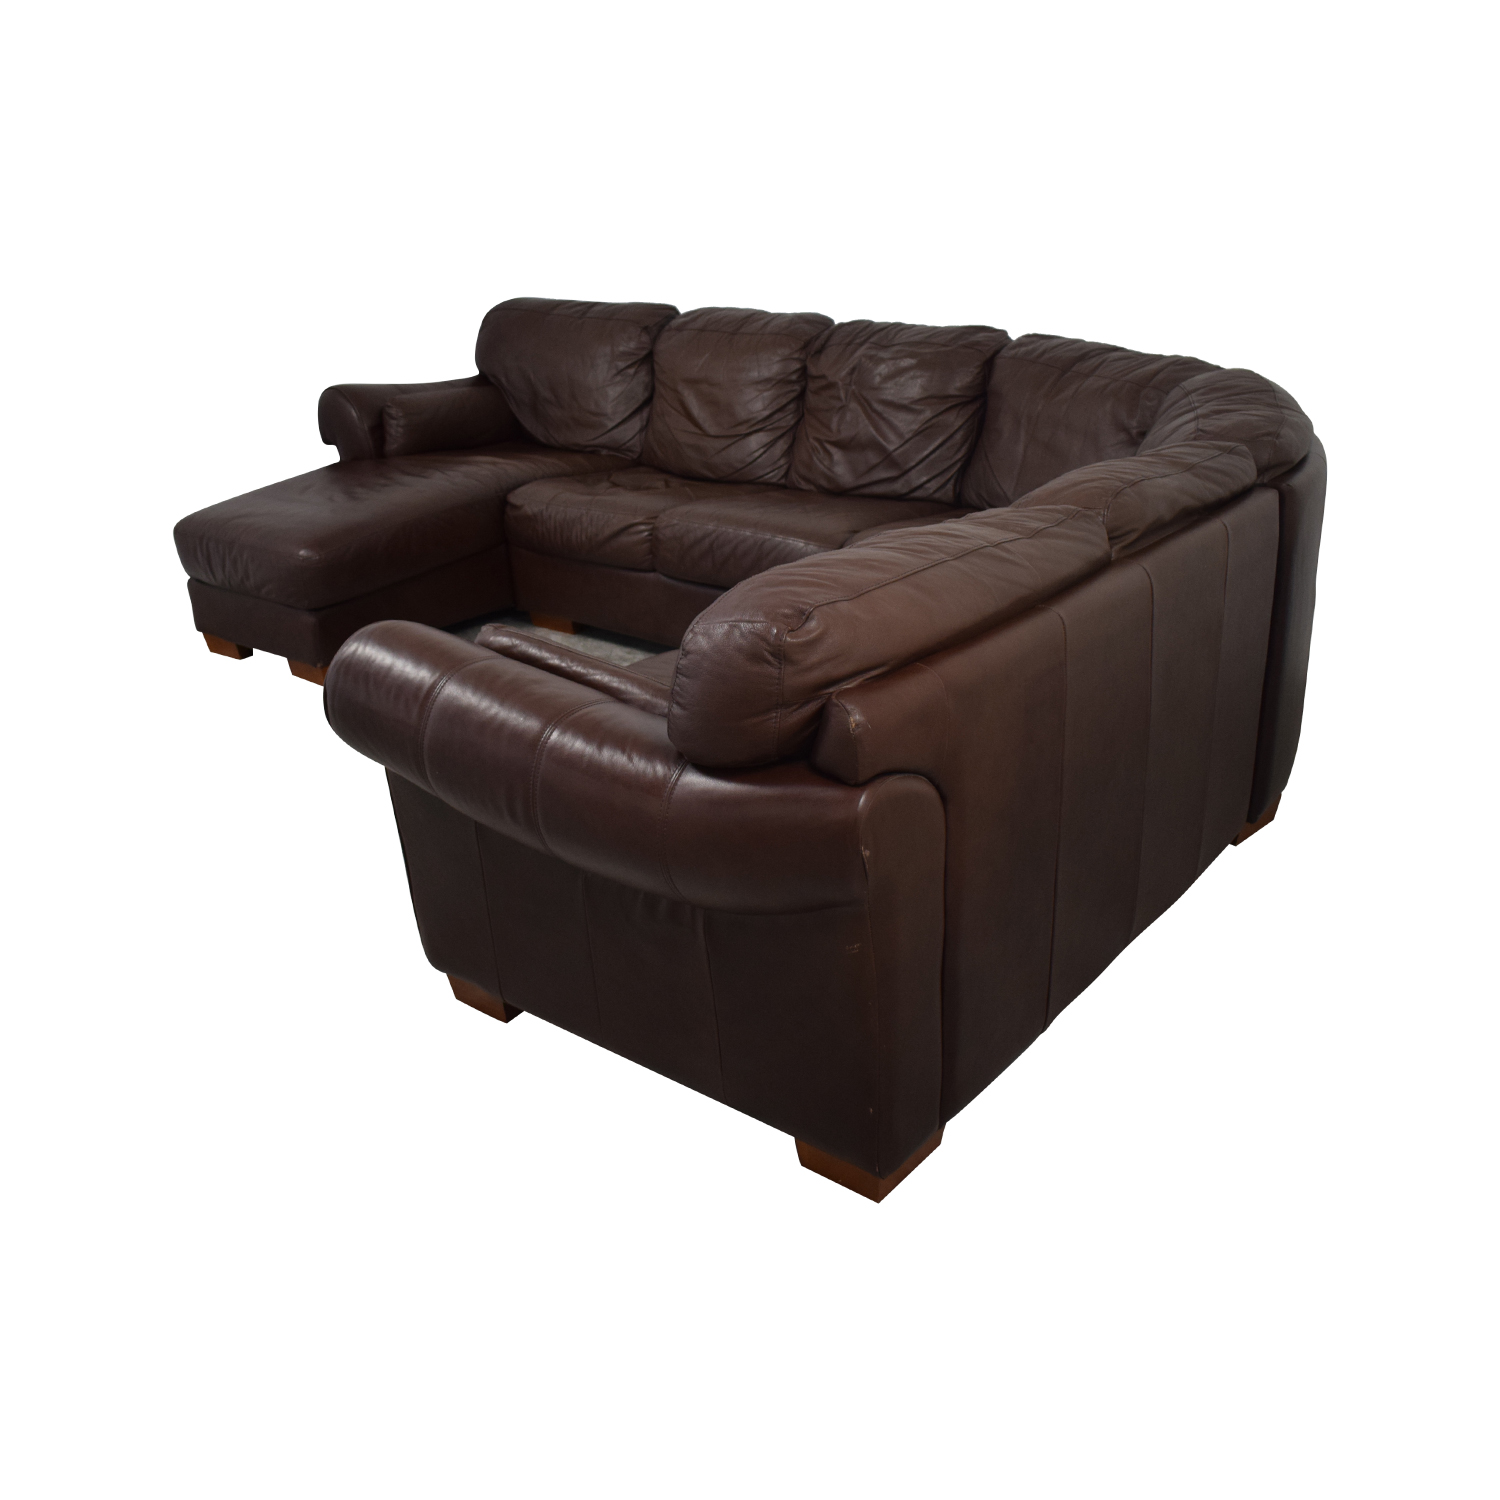 Chateaux D Ax Divani.89 Off Chateau D Ax Chateau D Ax Divani Brown Leather L Sectional Couch With Chaise Sofas